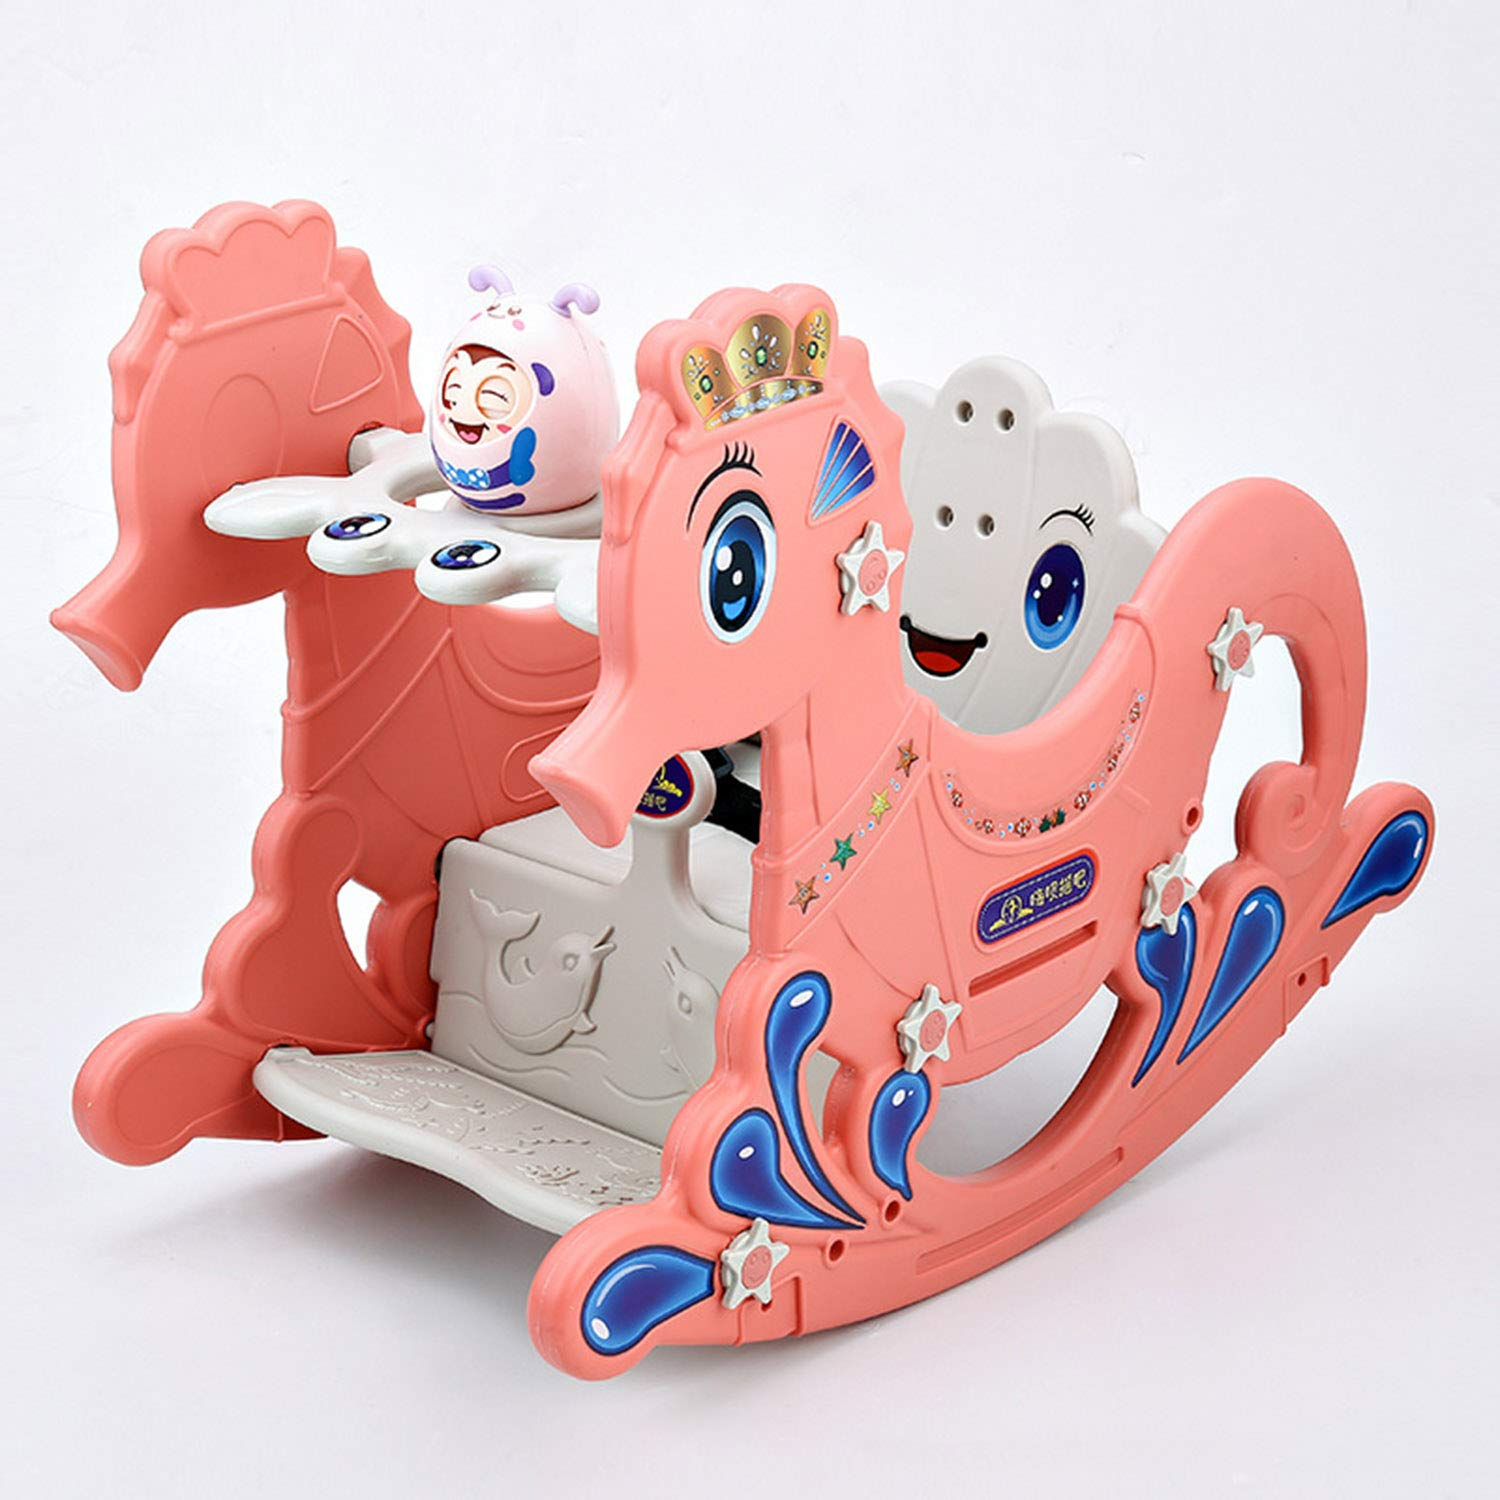 AIBAB Baby Rocking Horse Hippocampus Tumbler Musical Toy Baby Comfort Chair Plastic Multifunction